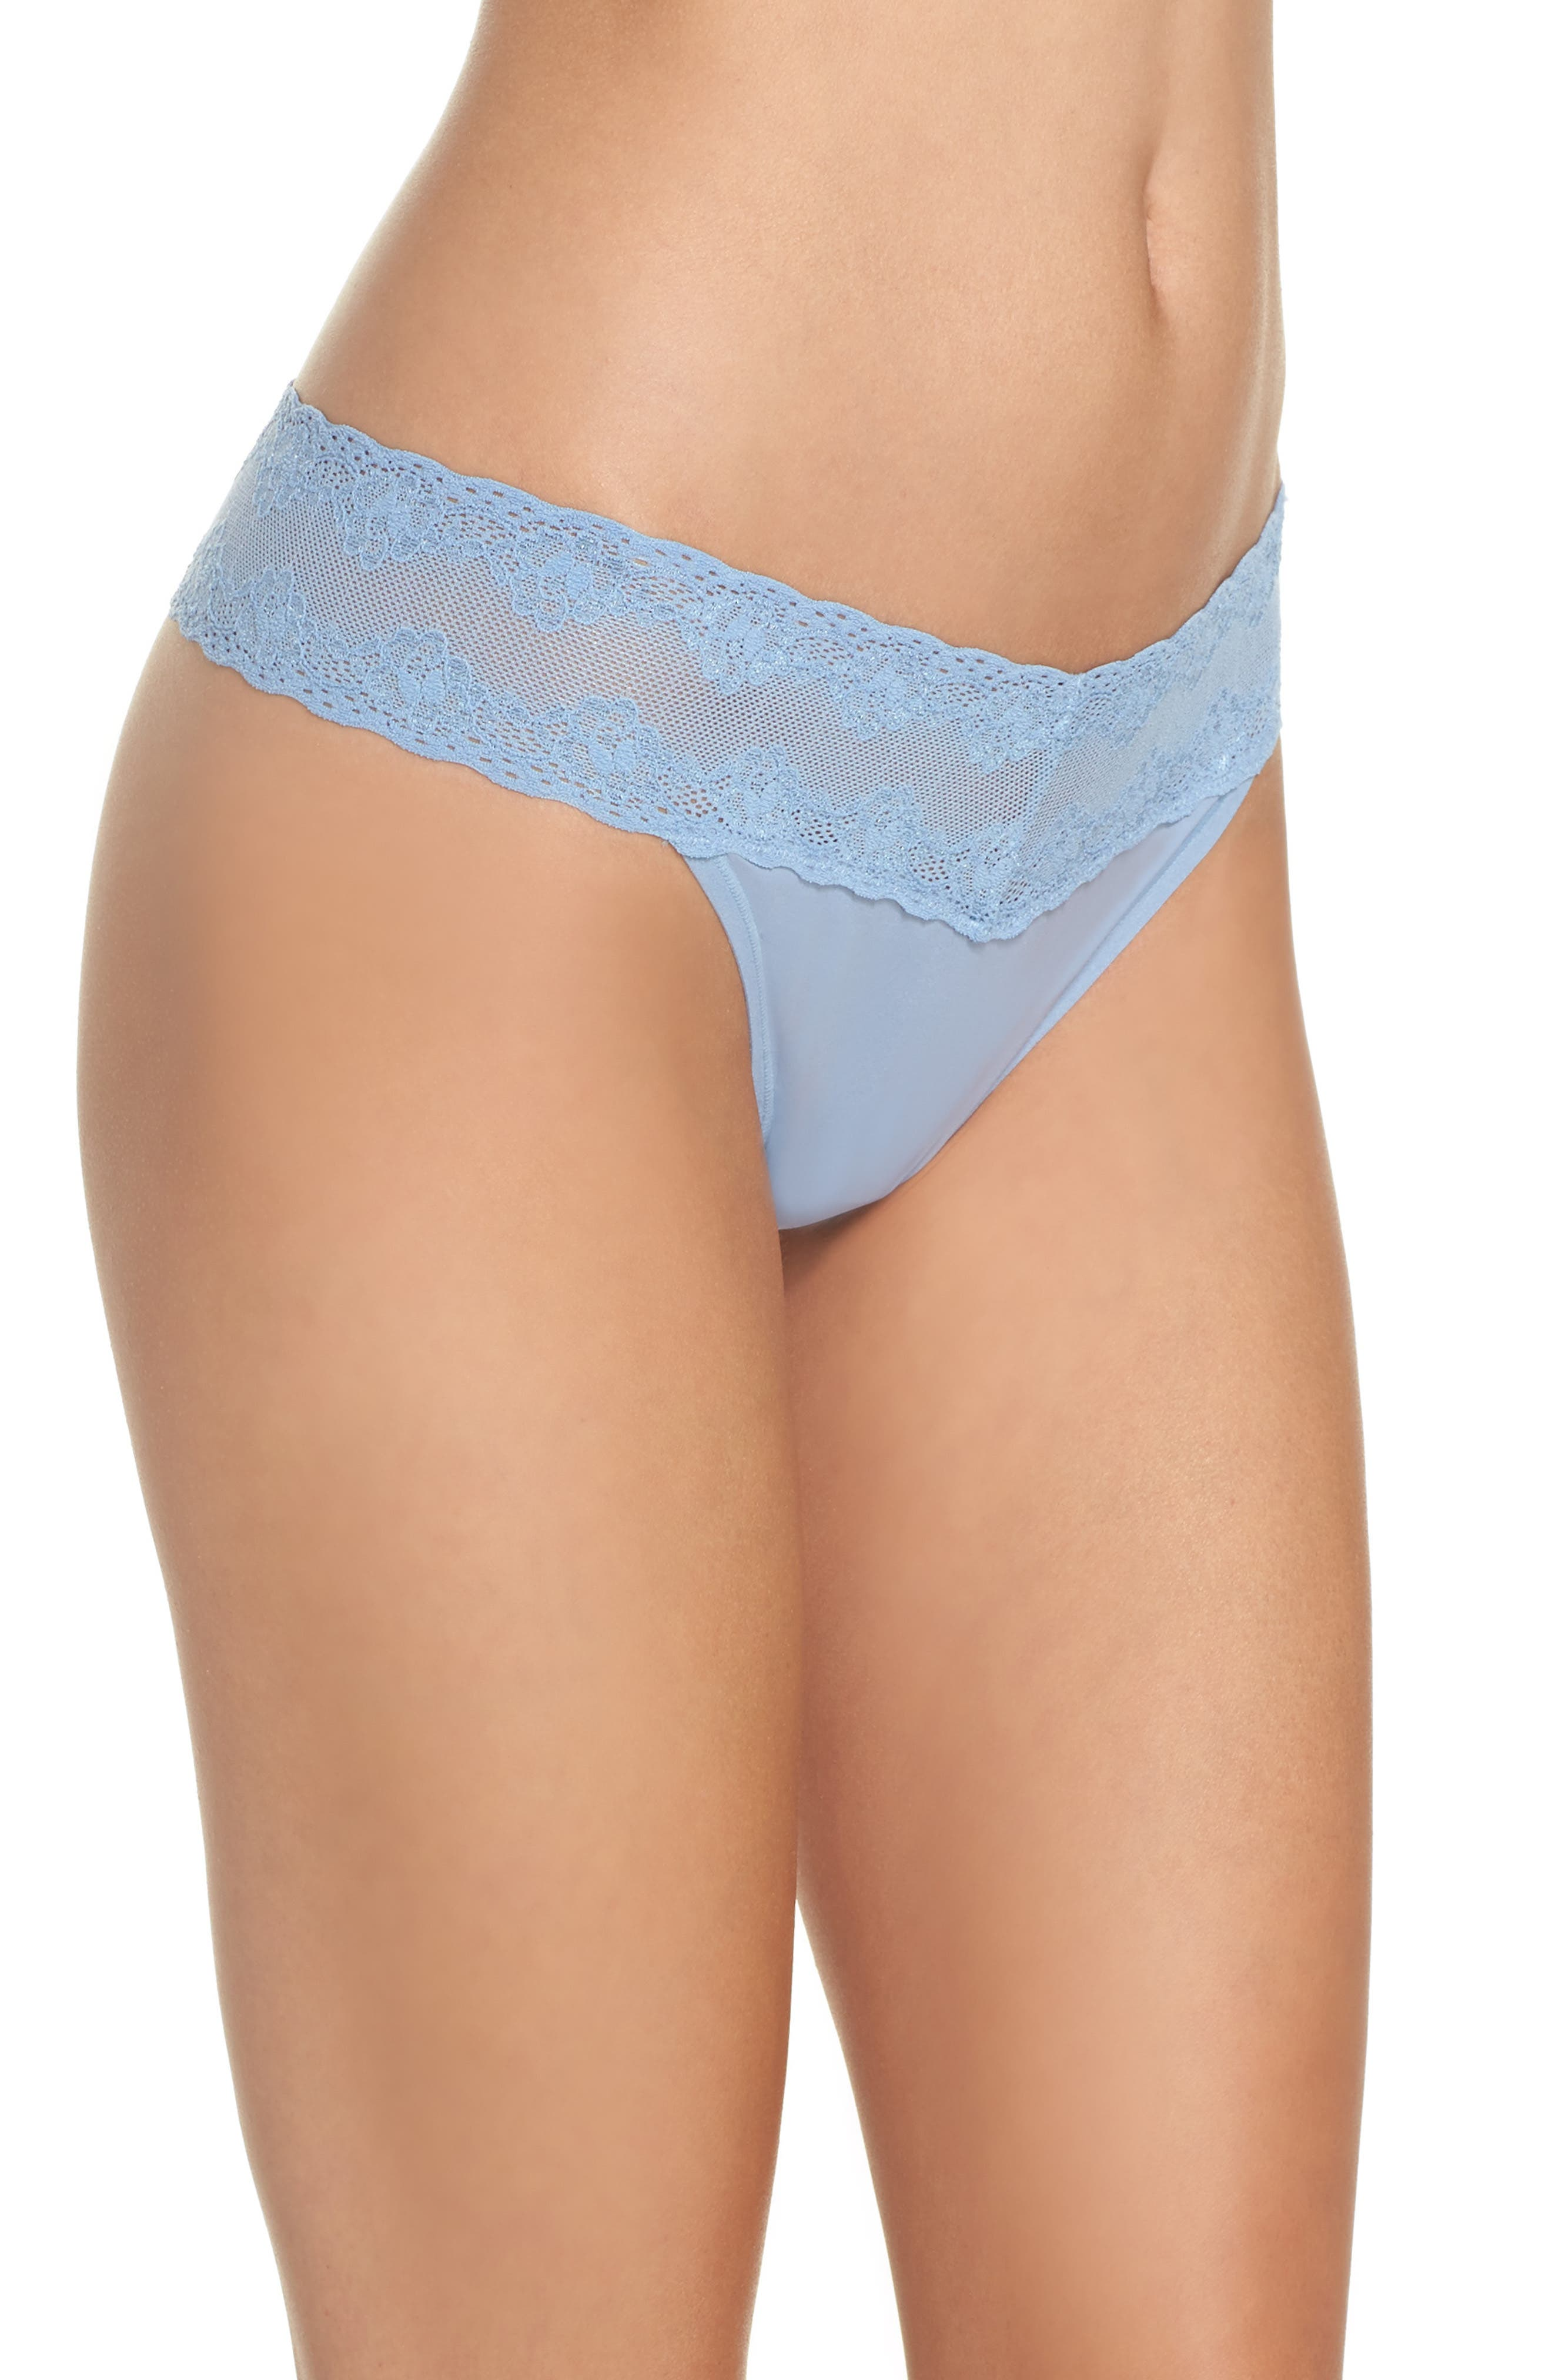 Bliss Perfection Thong,                             Alternate thumbnail 212, color,